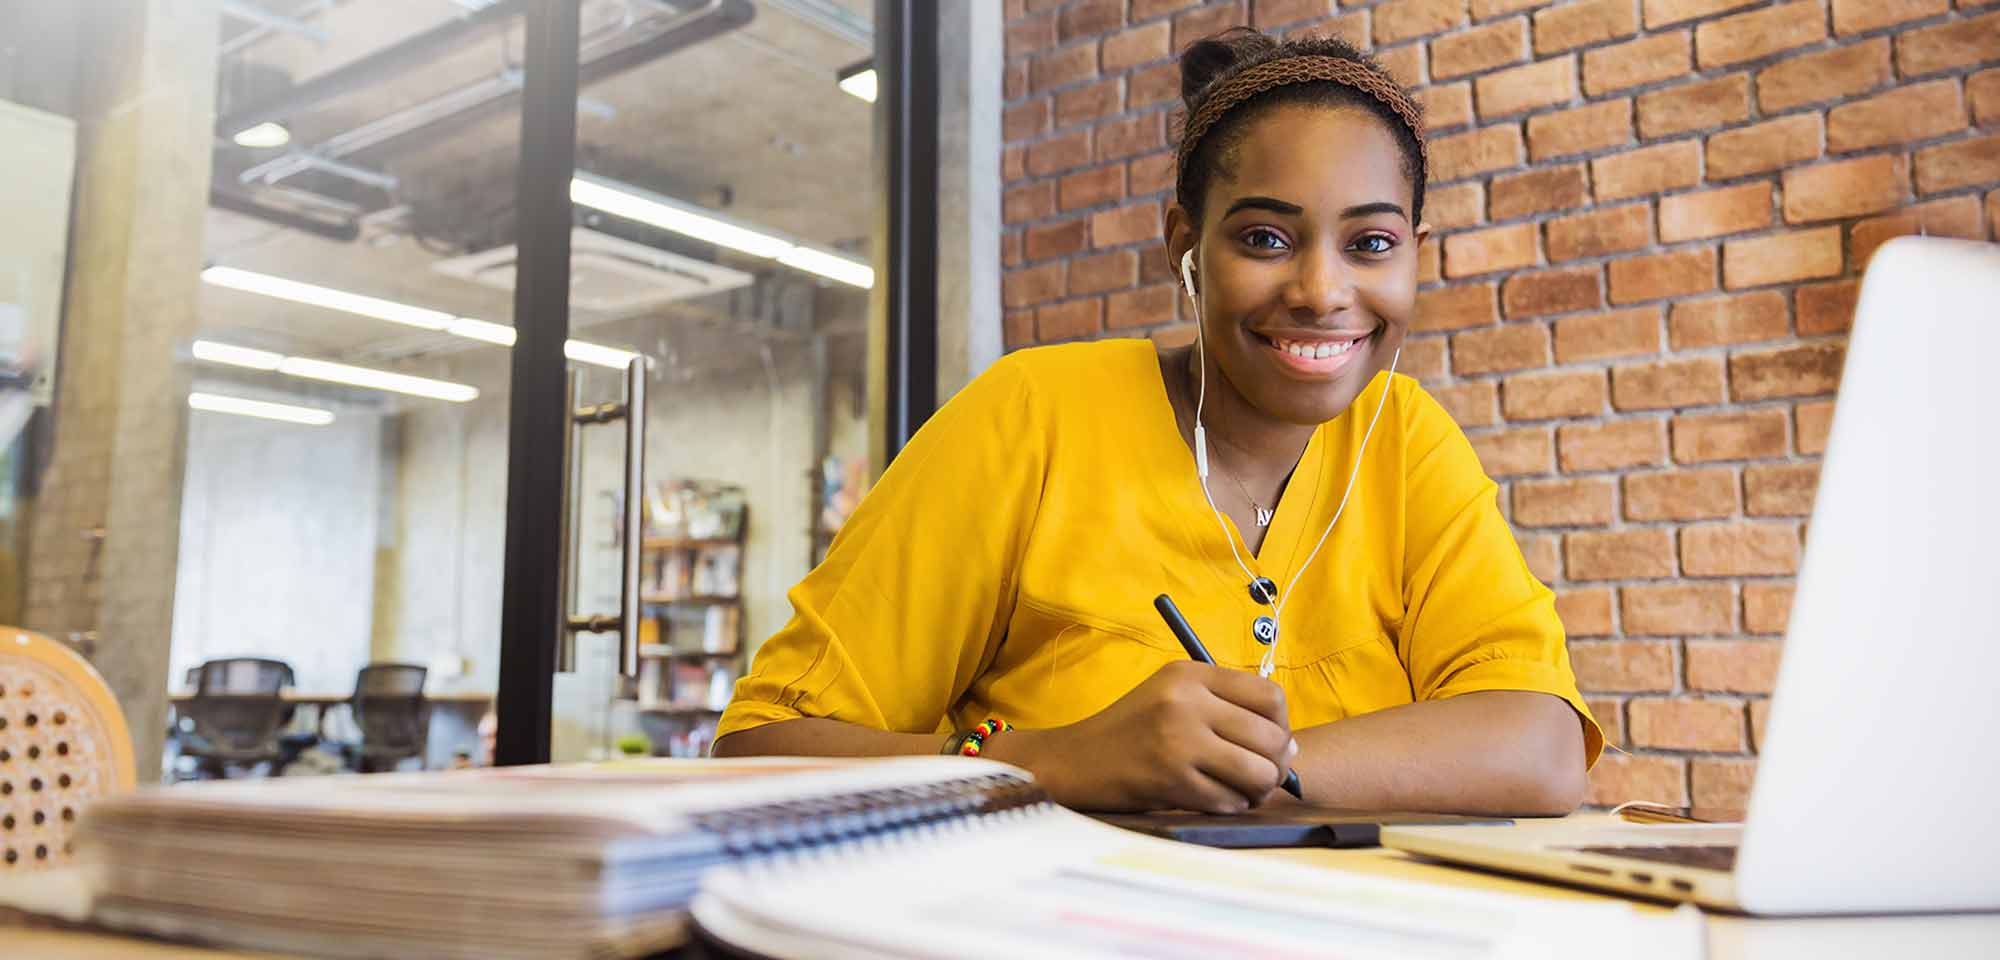 black female student wearing yellow shirt holding pen in front of laptop and books